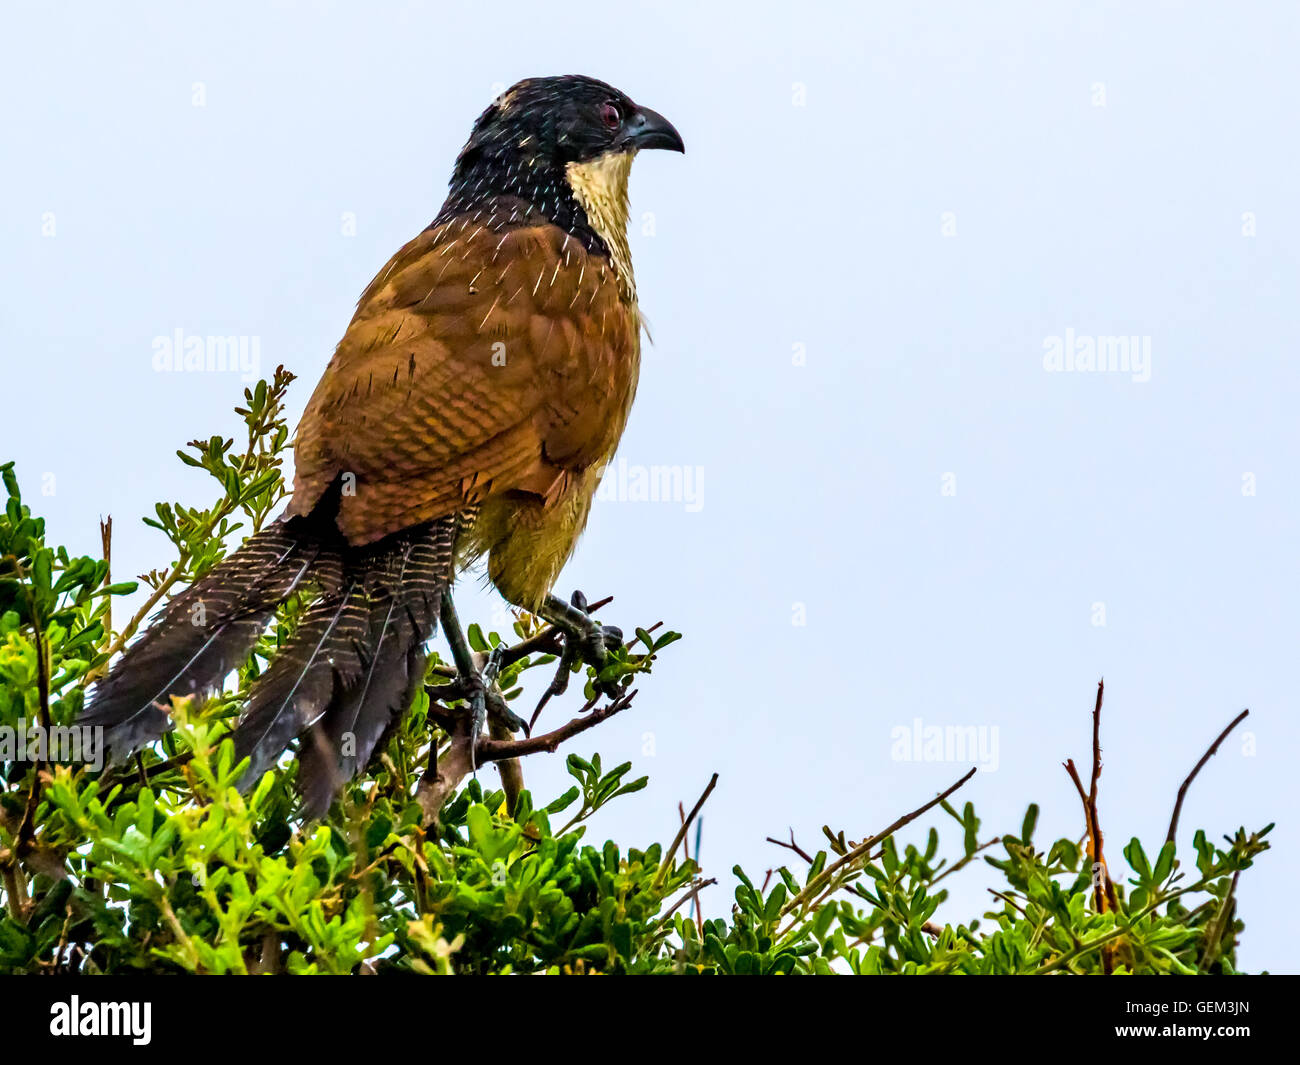 Burchell's Coucal Centropus burchelli) - Stock Image